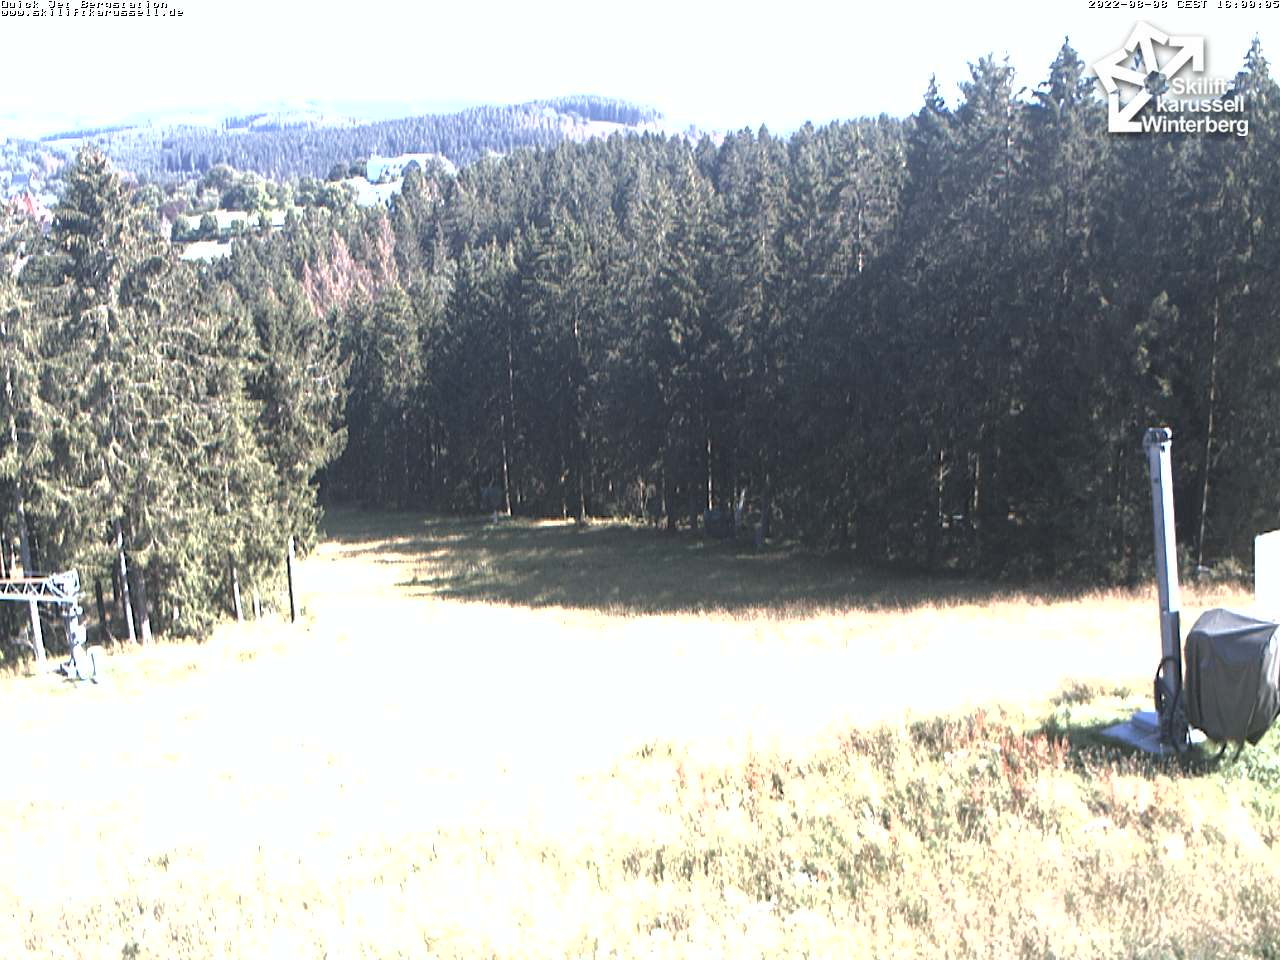 Skiliftkarussell Winterberg - Webcam 4